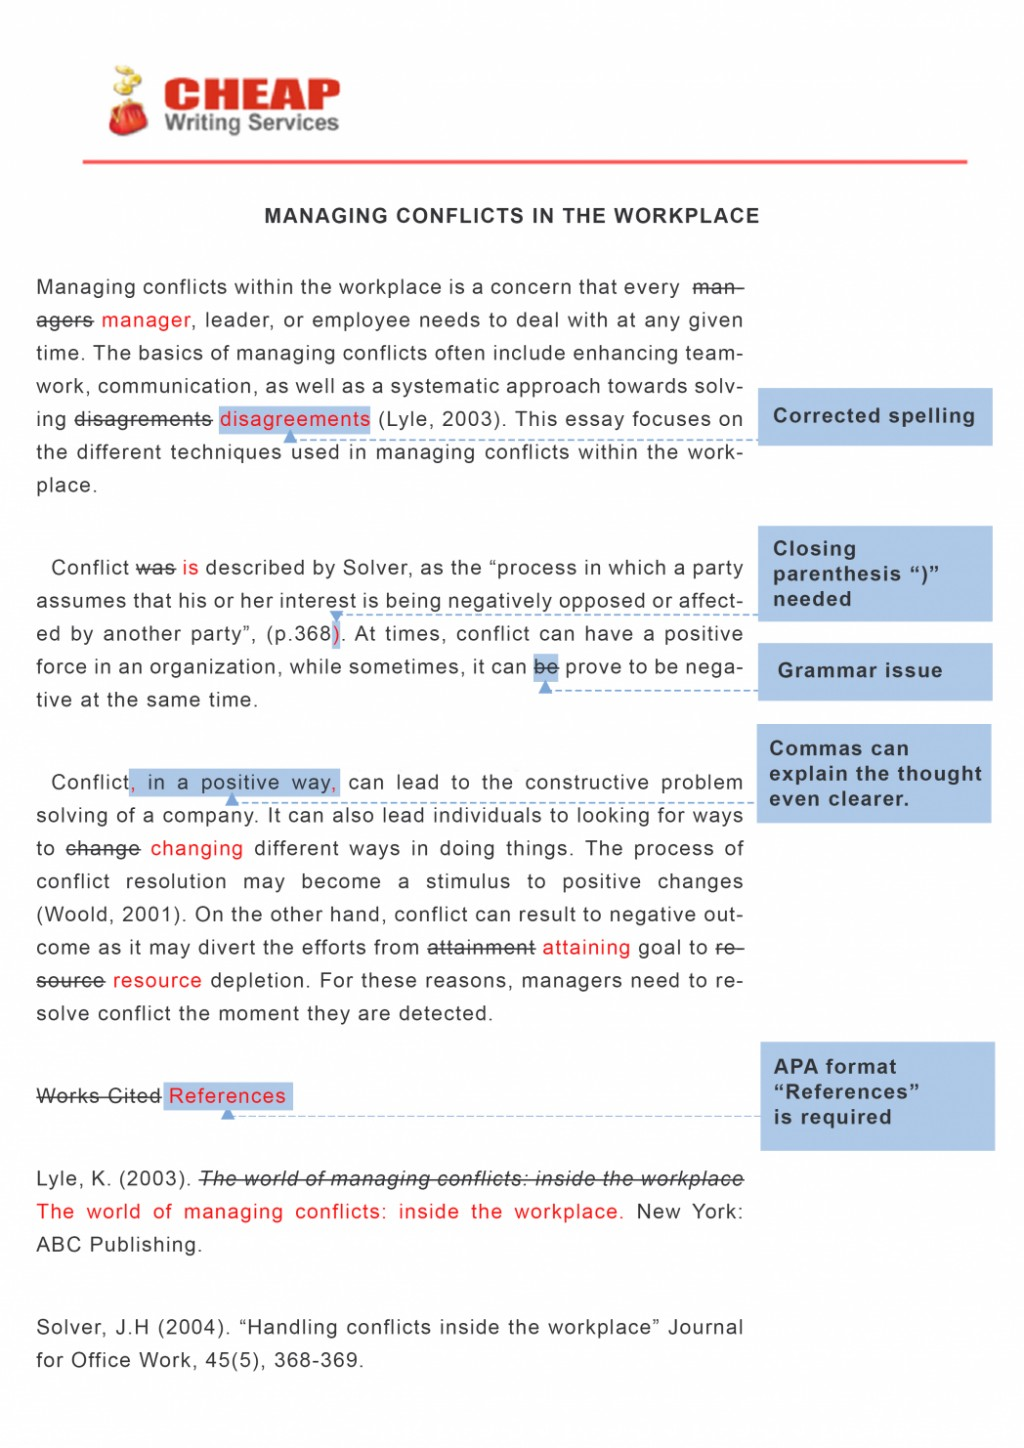 013 Cheap Essay Service The Best Editing Online Top Writing Services Reddit Ex Uk Canada Reviews 1048x1482 Beautiful 2018 Large